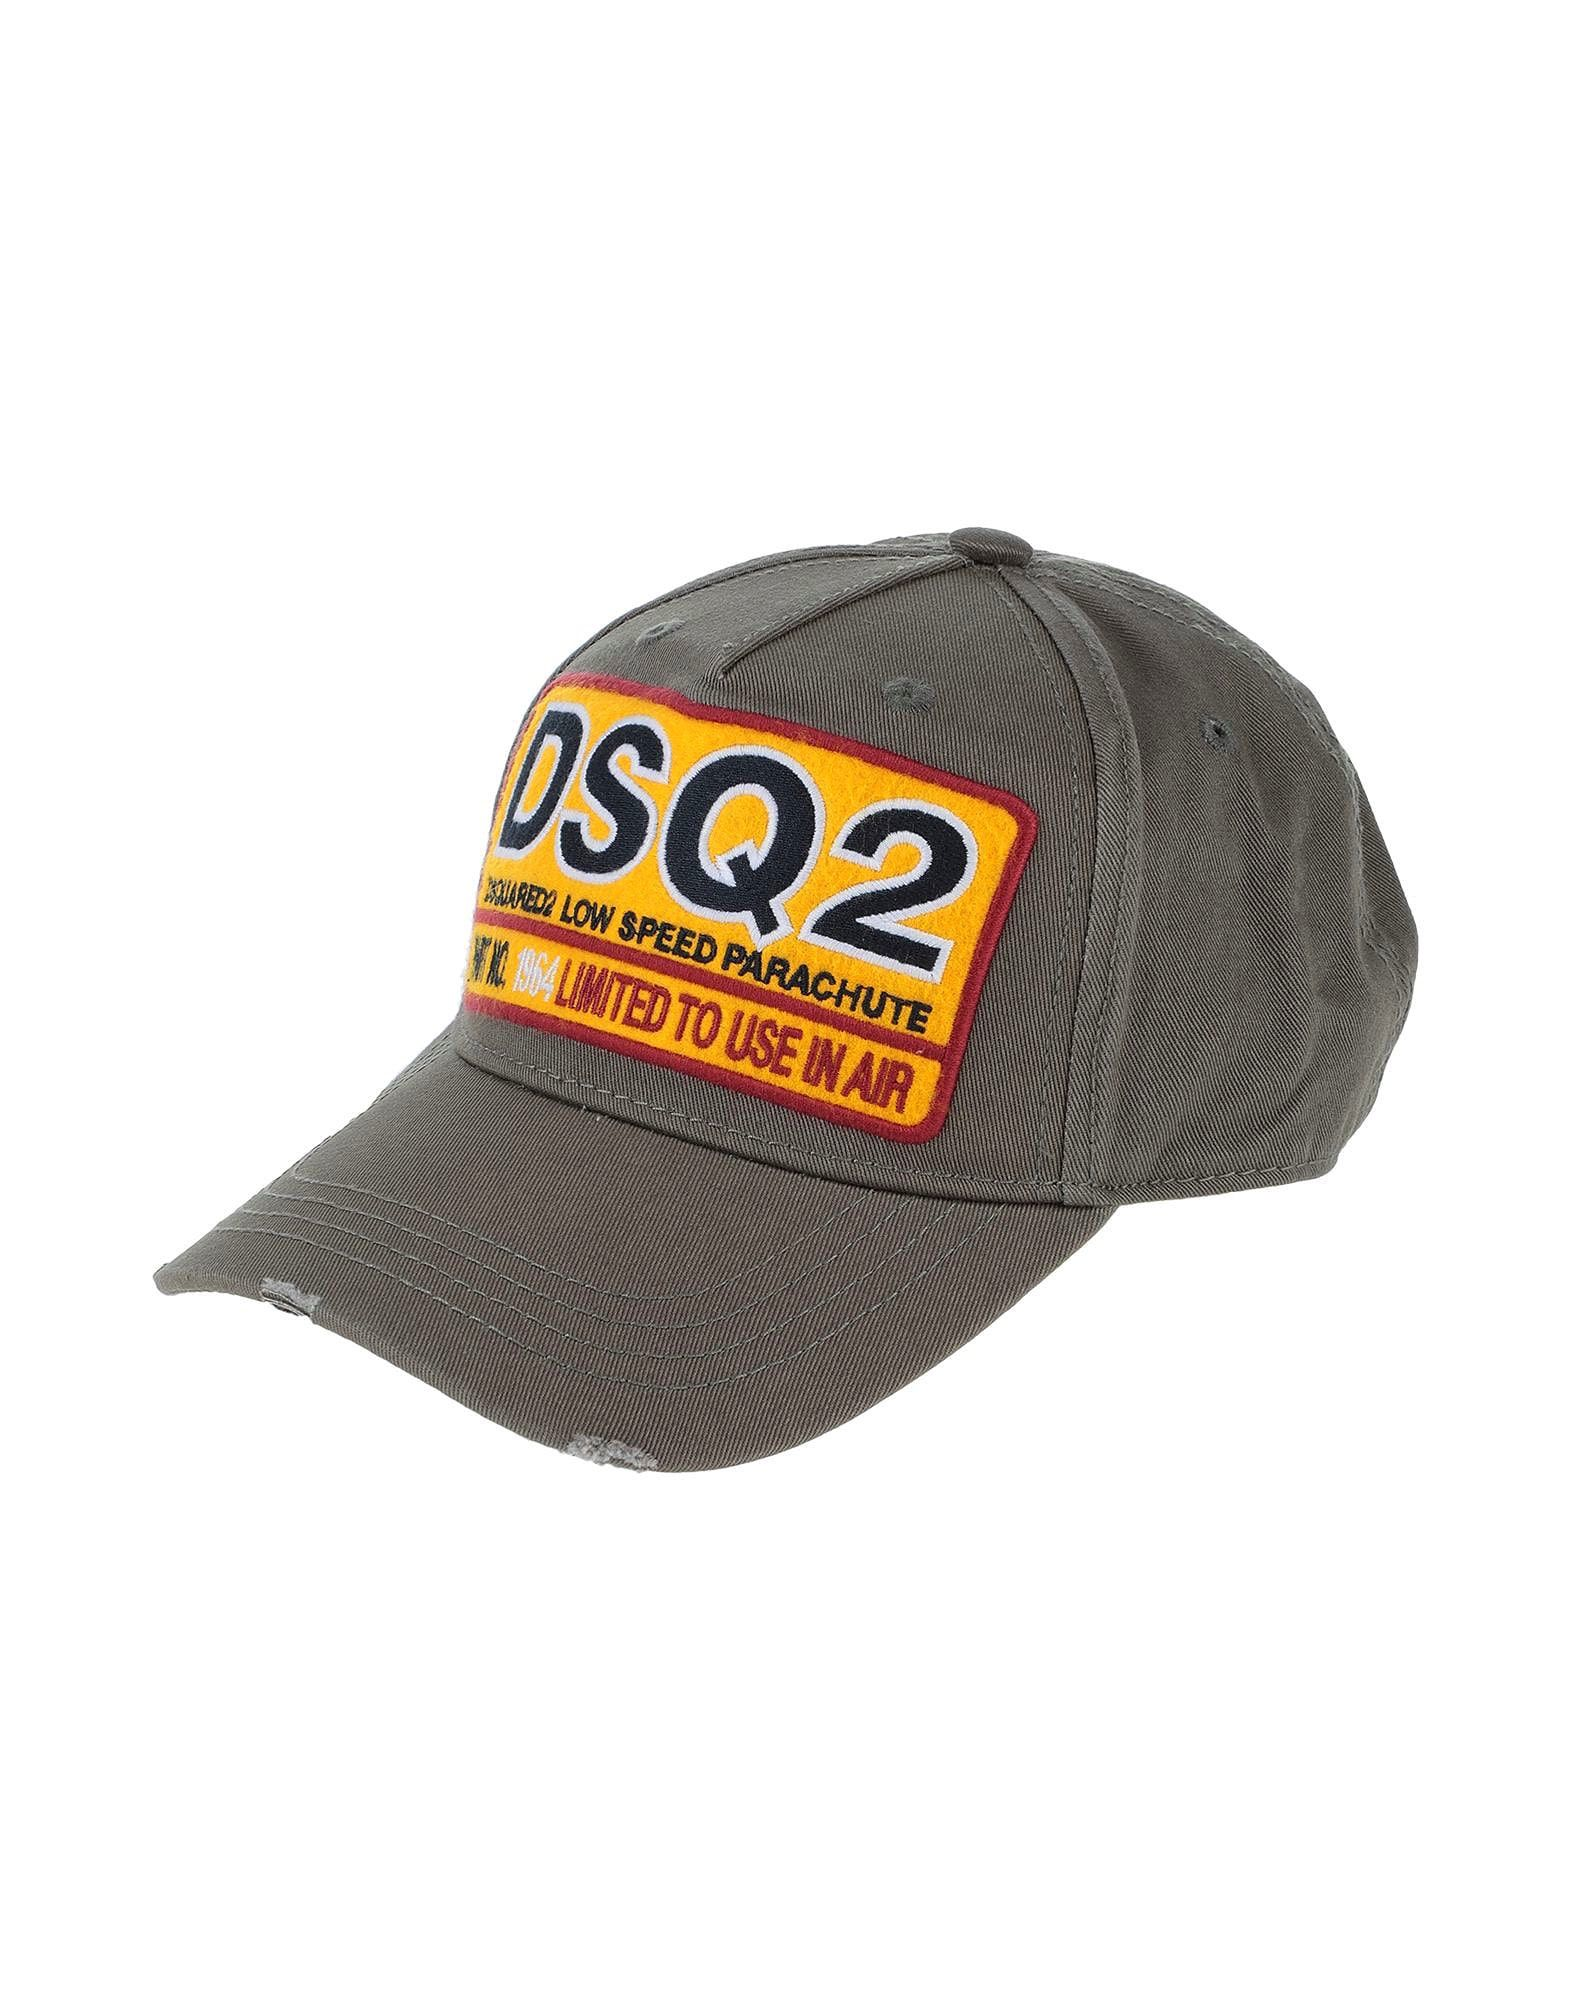 Dsquared2 Dark Green DSQ2 Hat